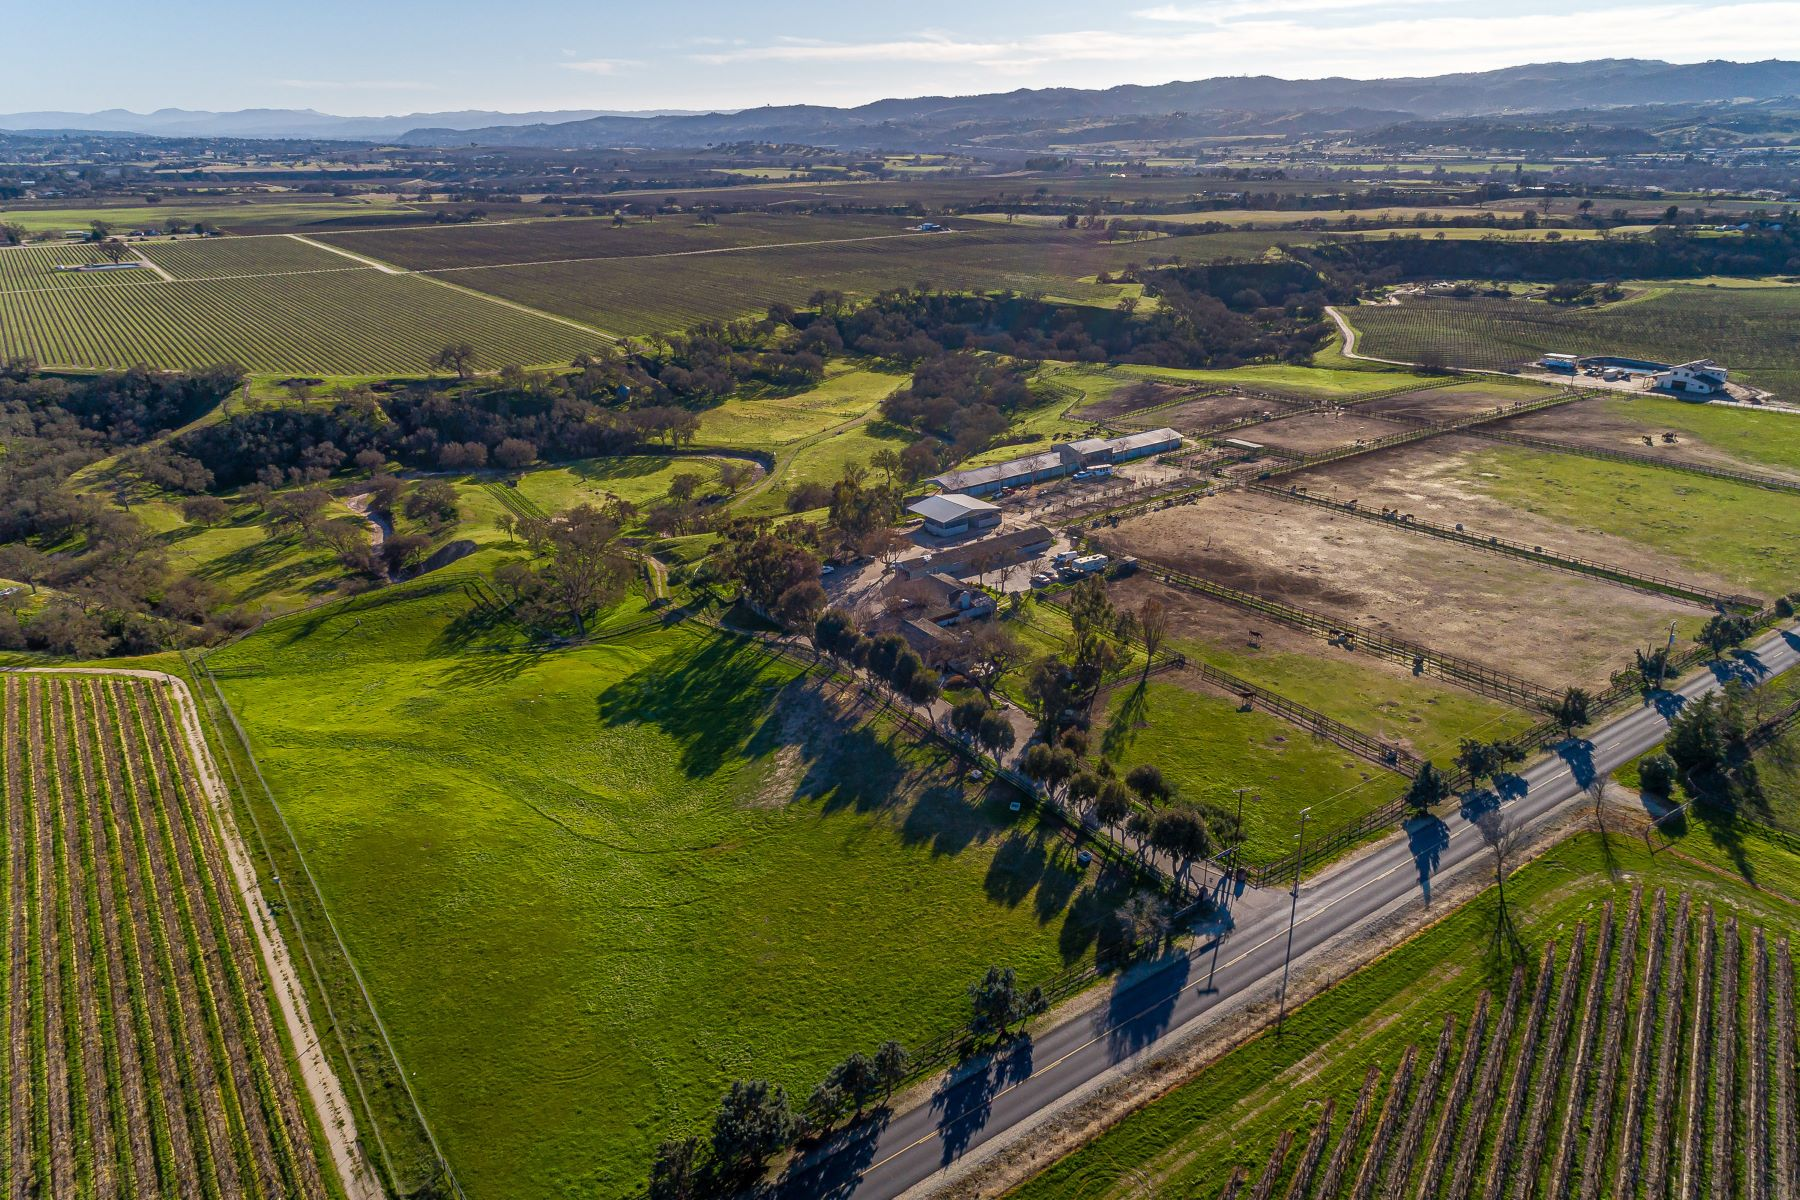 Farm / Ranch / Plantation for Sale at Two Ranch Style Homes & 3 Barns 1880 Wellsona Road Paso Robles, California 93446 United States